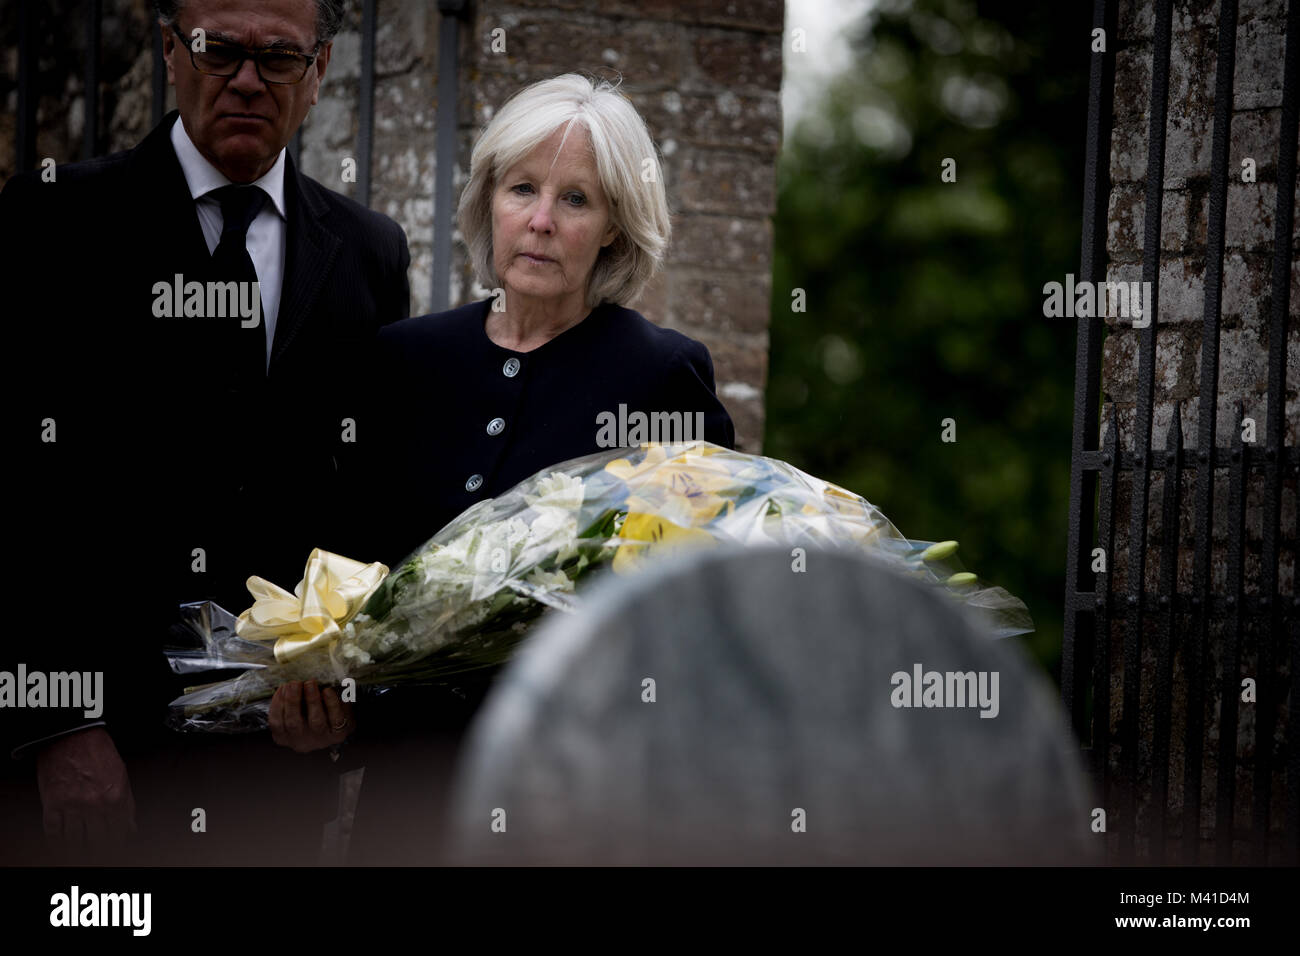 Senior couple at a funeral - Stock Image